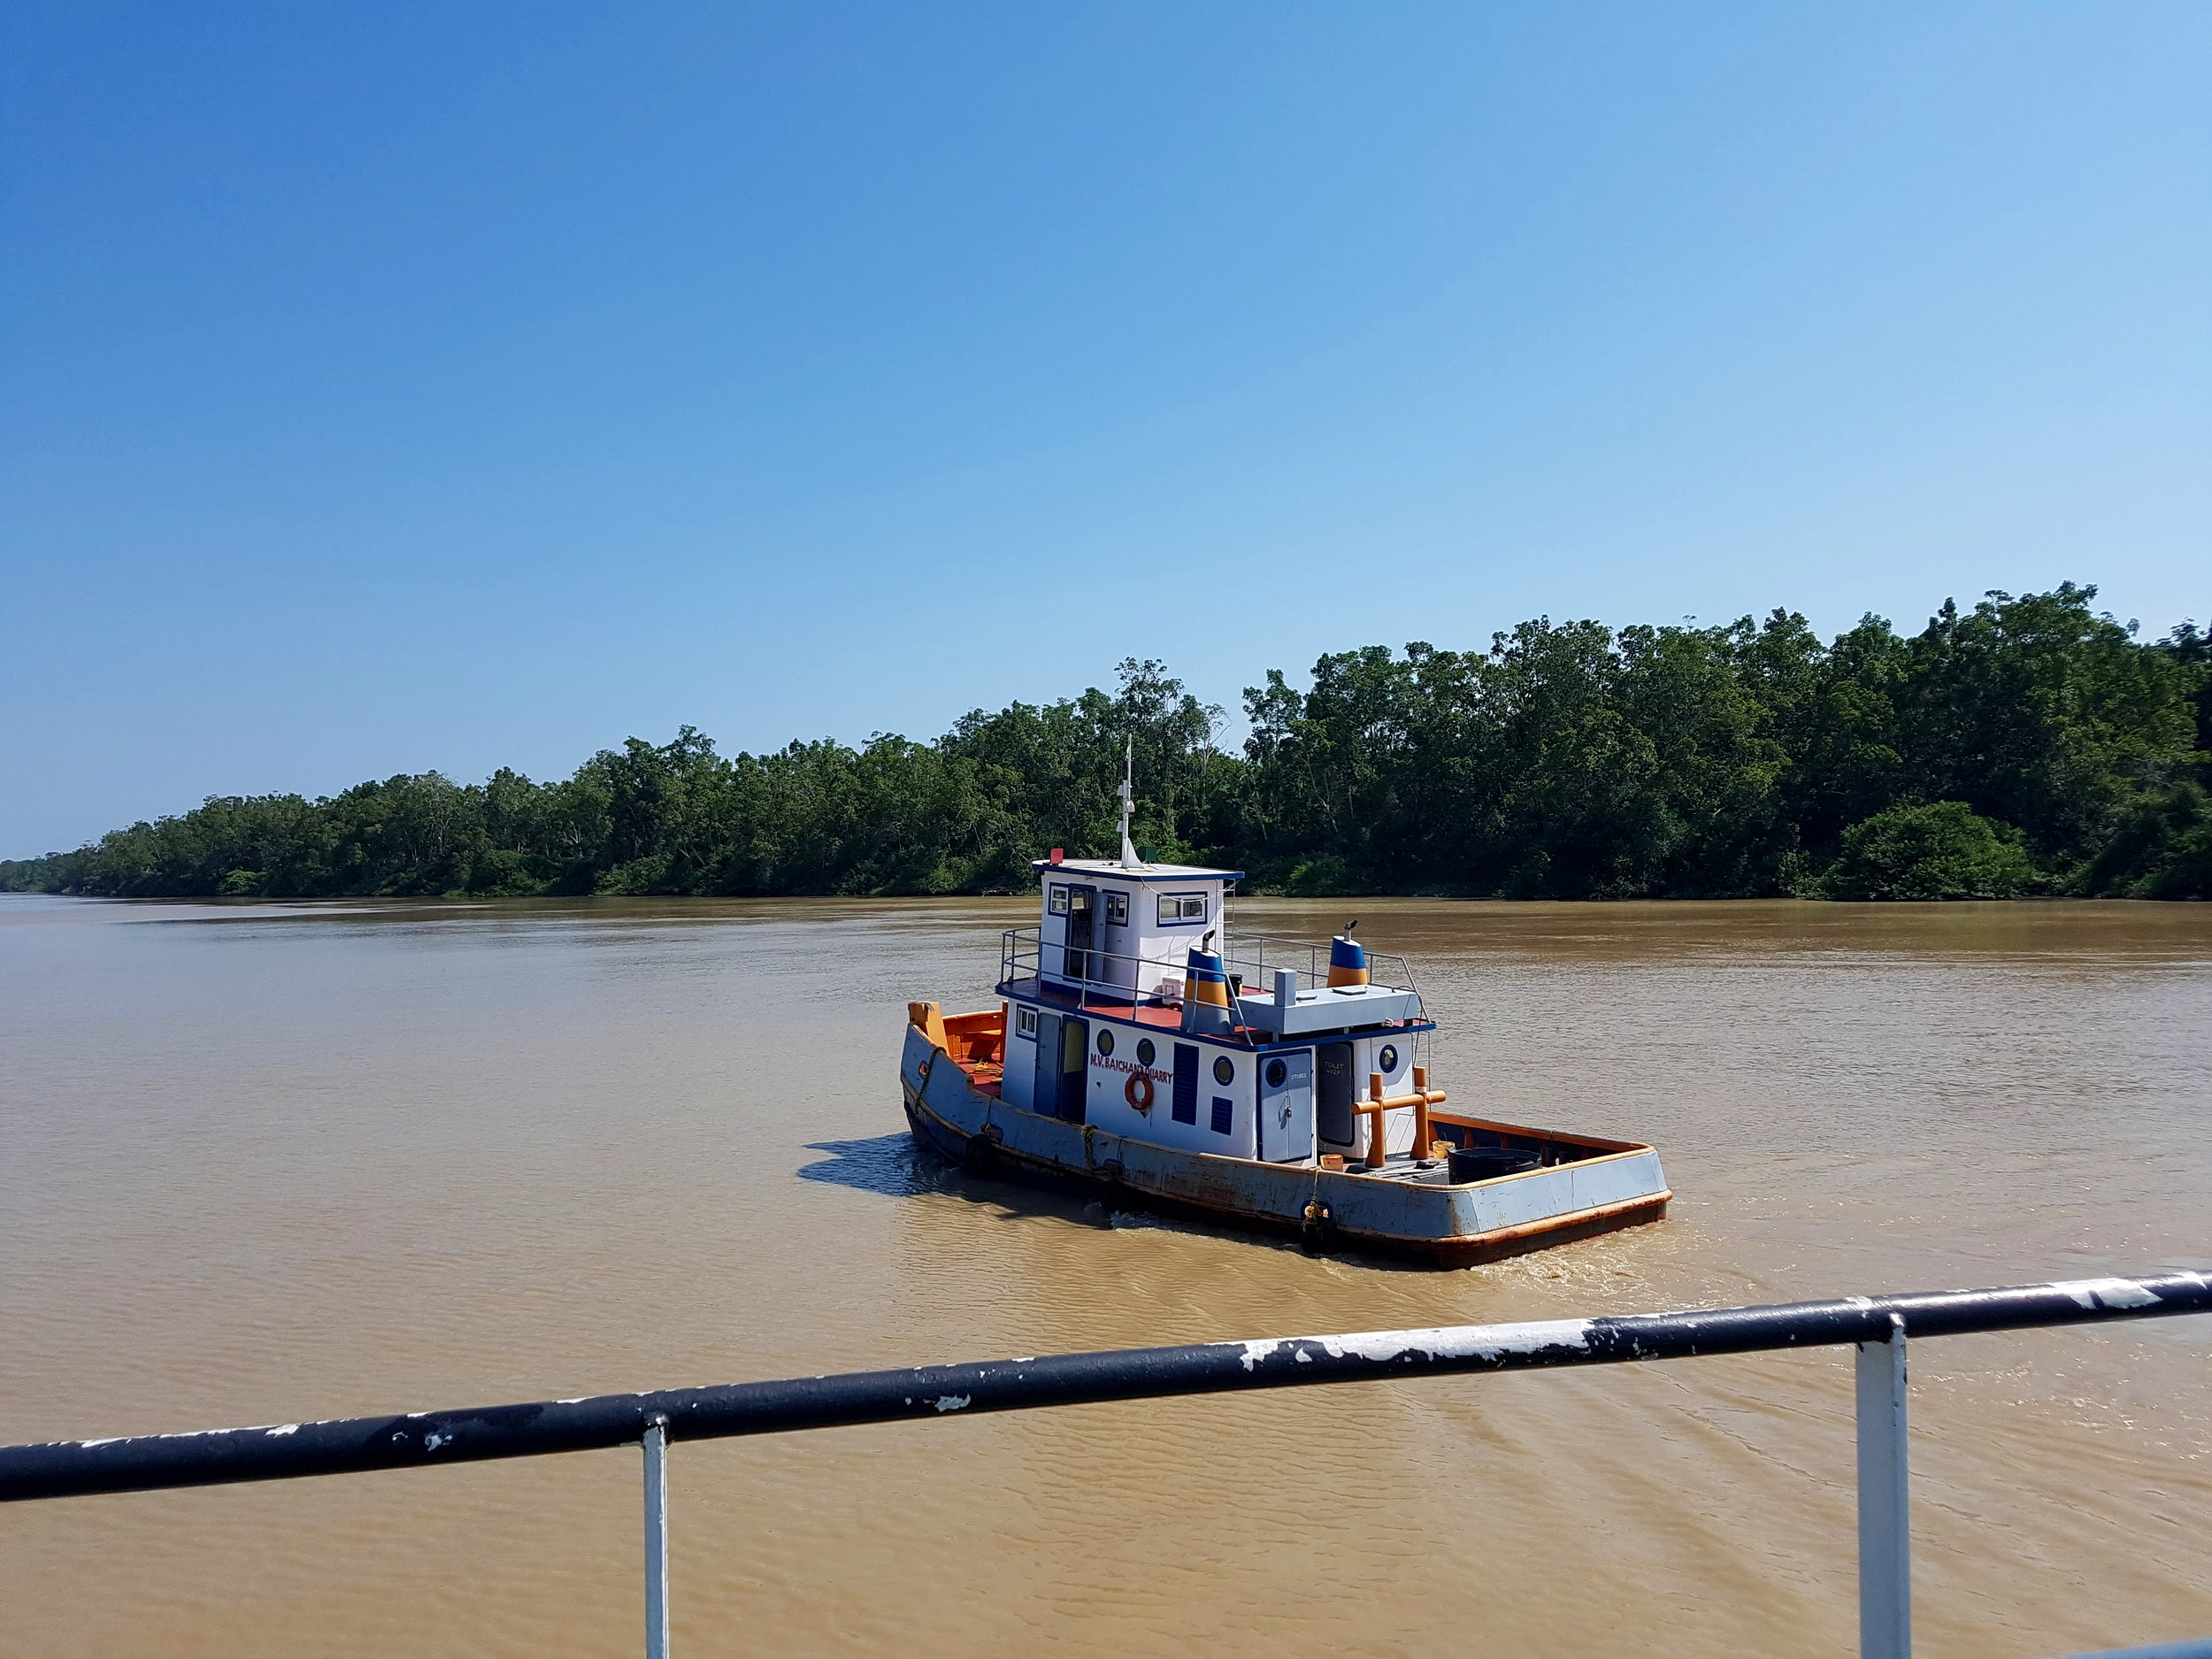 Less a tug boat, more a bumper boat which shoved our ferry across the border into Guyana.